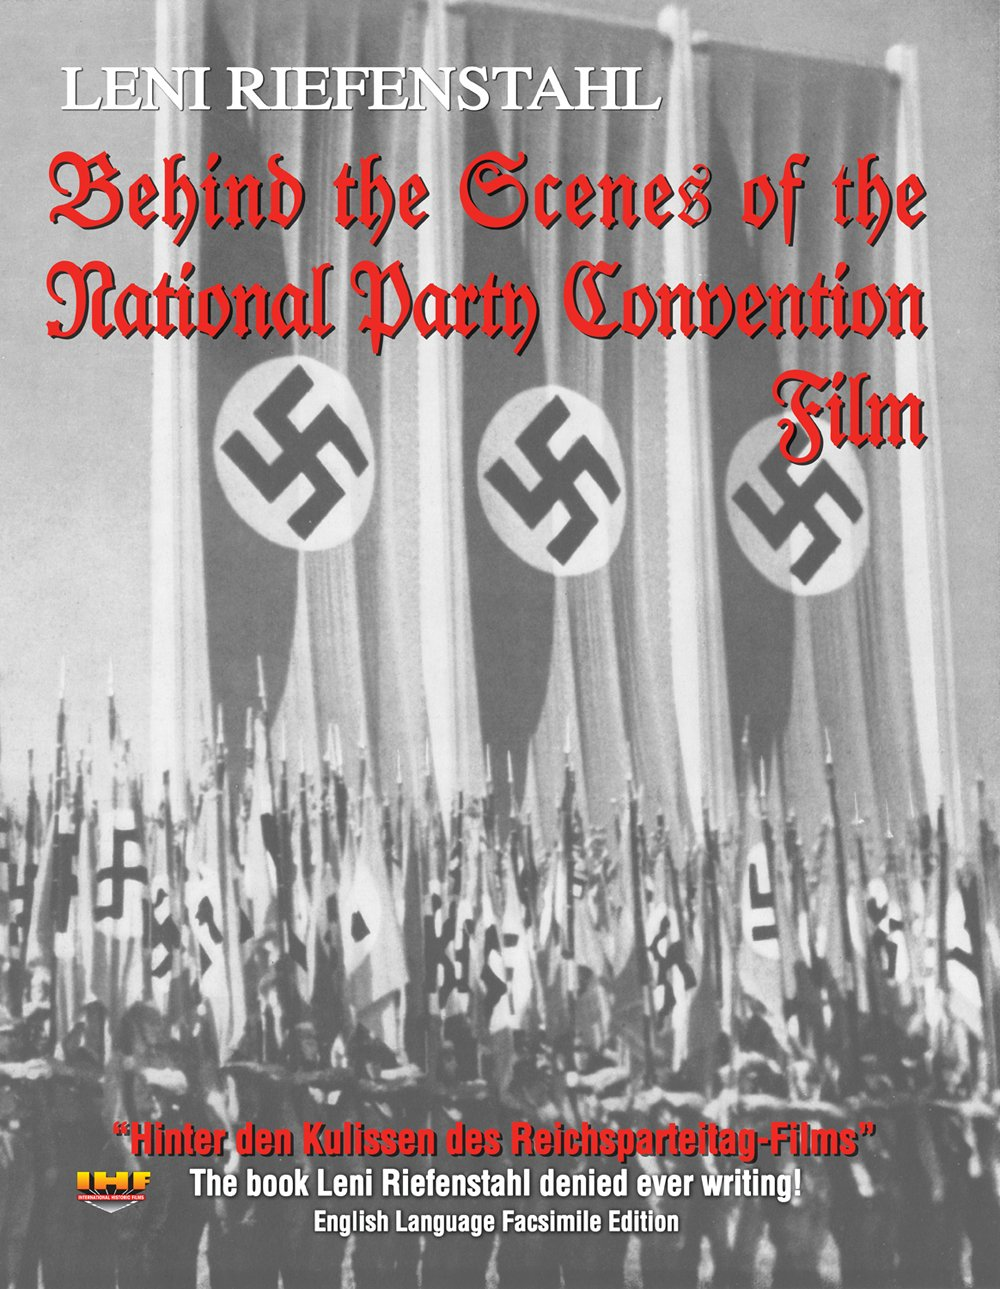 Behind the Scenes of the National Party Convention Film (Hinter den Kulissen des Reichsparteitag-Films): Leni Riefenstahl: 9781572998674: Amazon.com: Books